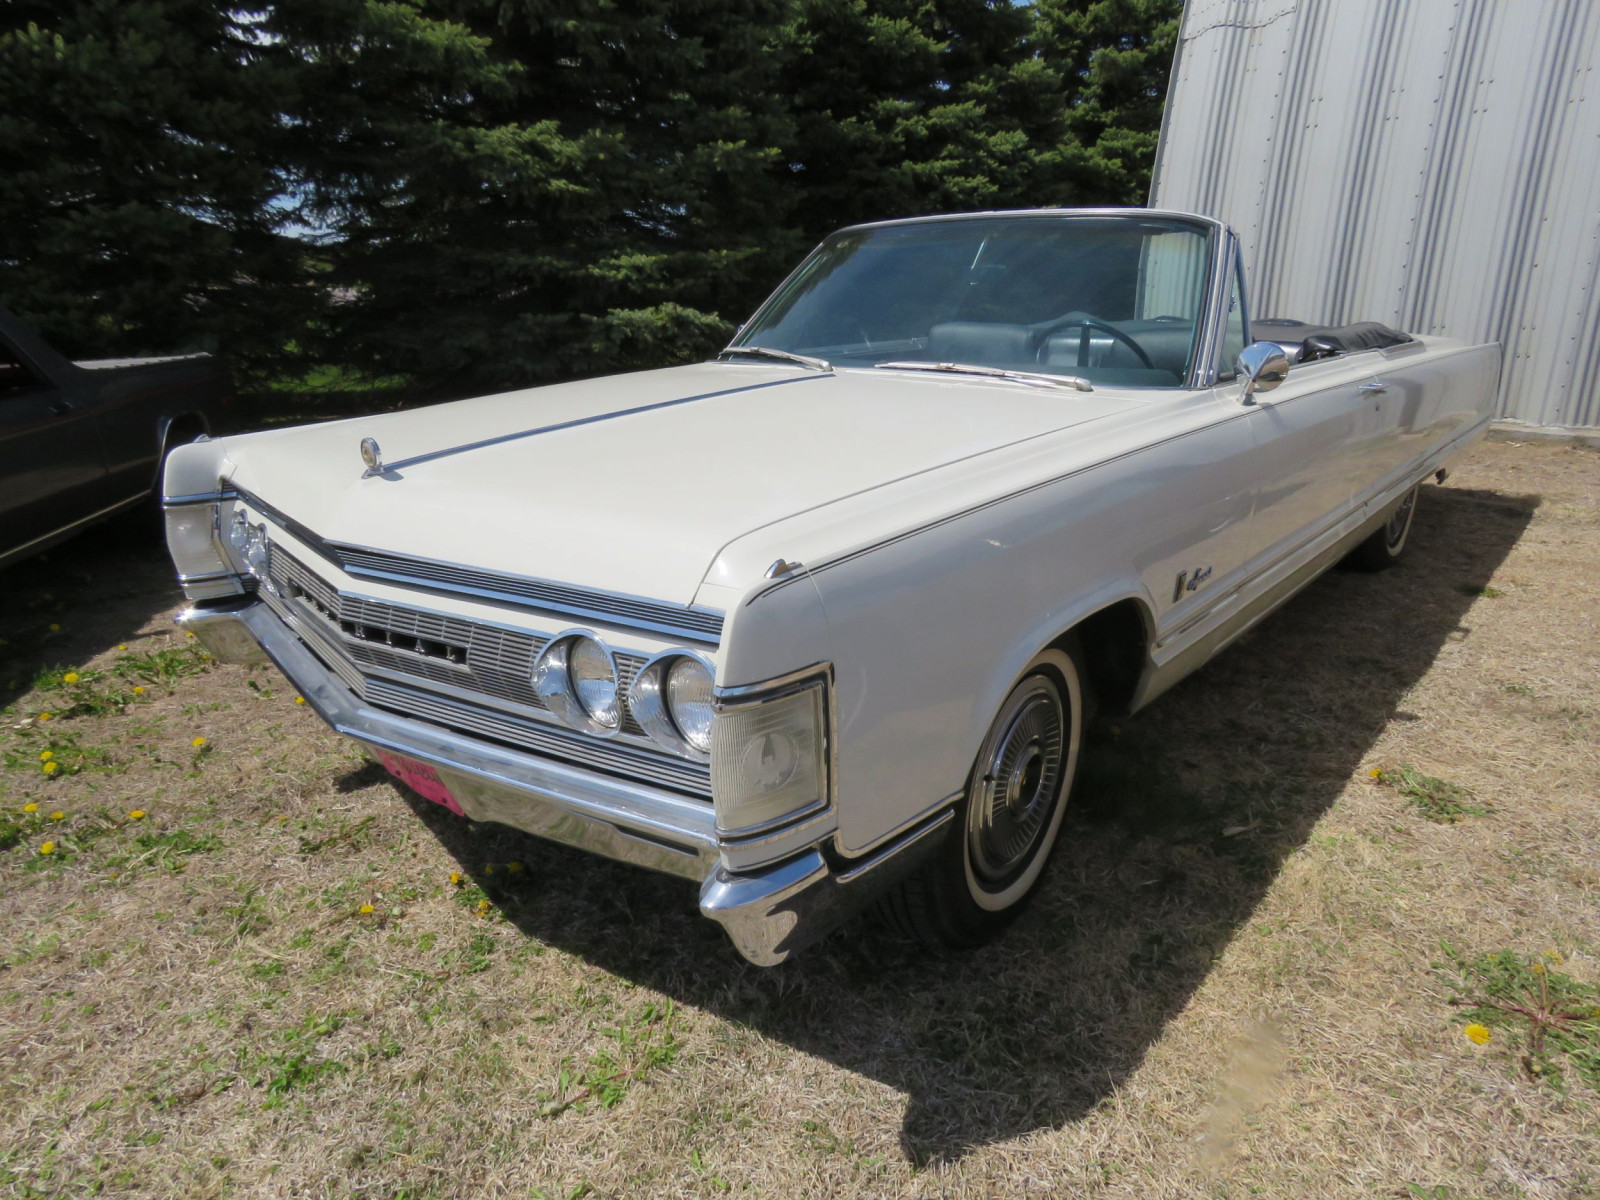 1967 Chrysler Imperial Convertible - Image 1